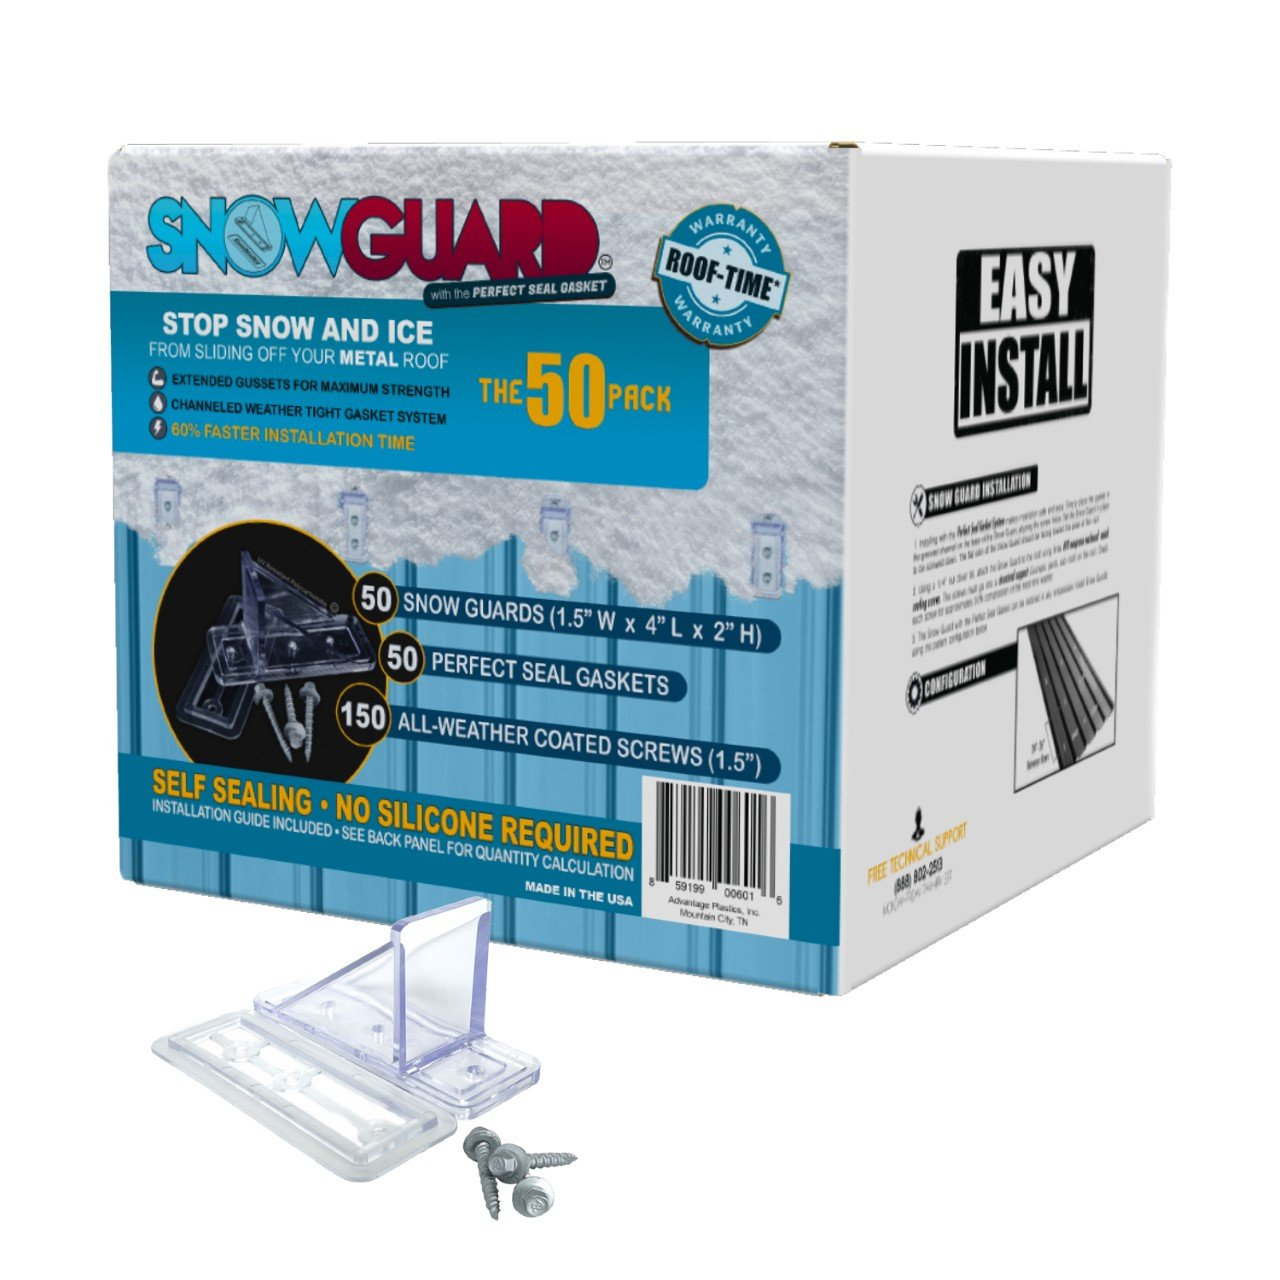 50 QTY Commercial Bulk Pack (Snow Guards, Perfect Seal Gaskets & Screws) - Stop Snow From Sliding Off Your Metal Roof Snow Guard Block Stops Breaks by SNOWGUARD WITH THE PERFECT SEAL GASKET